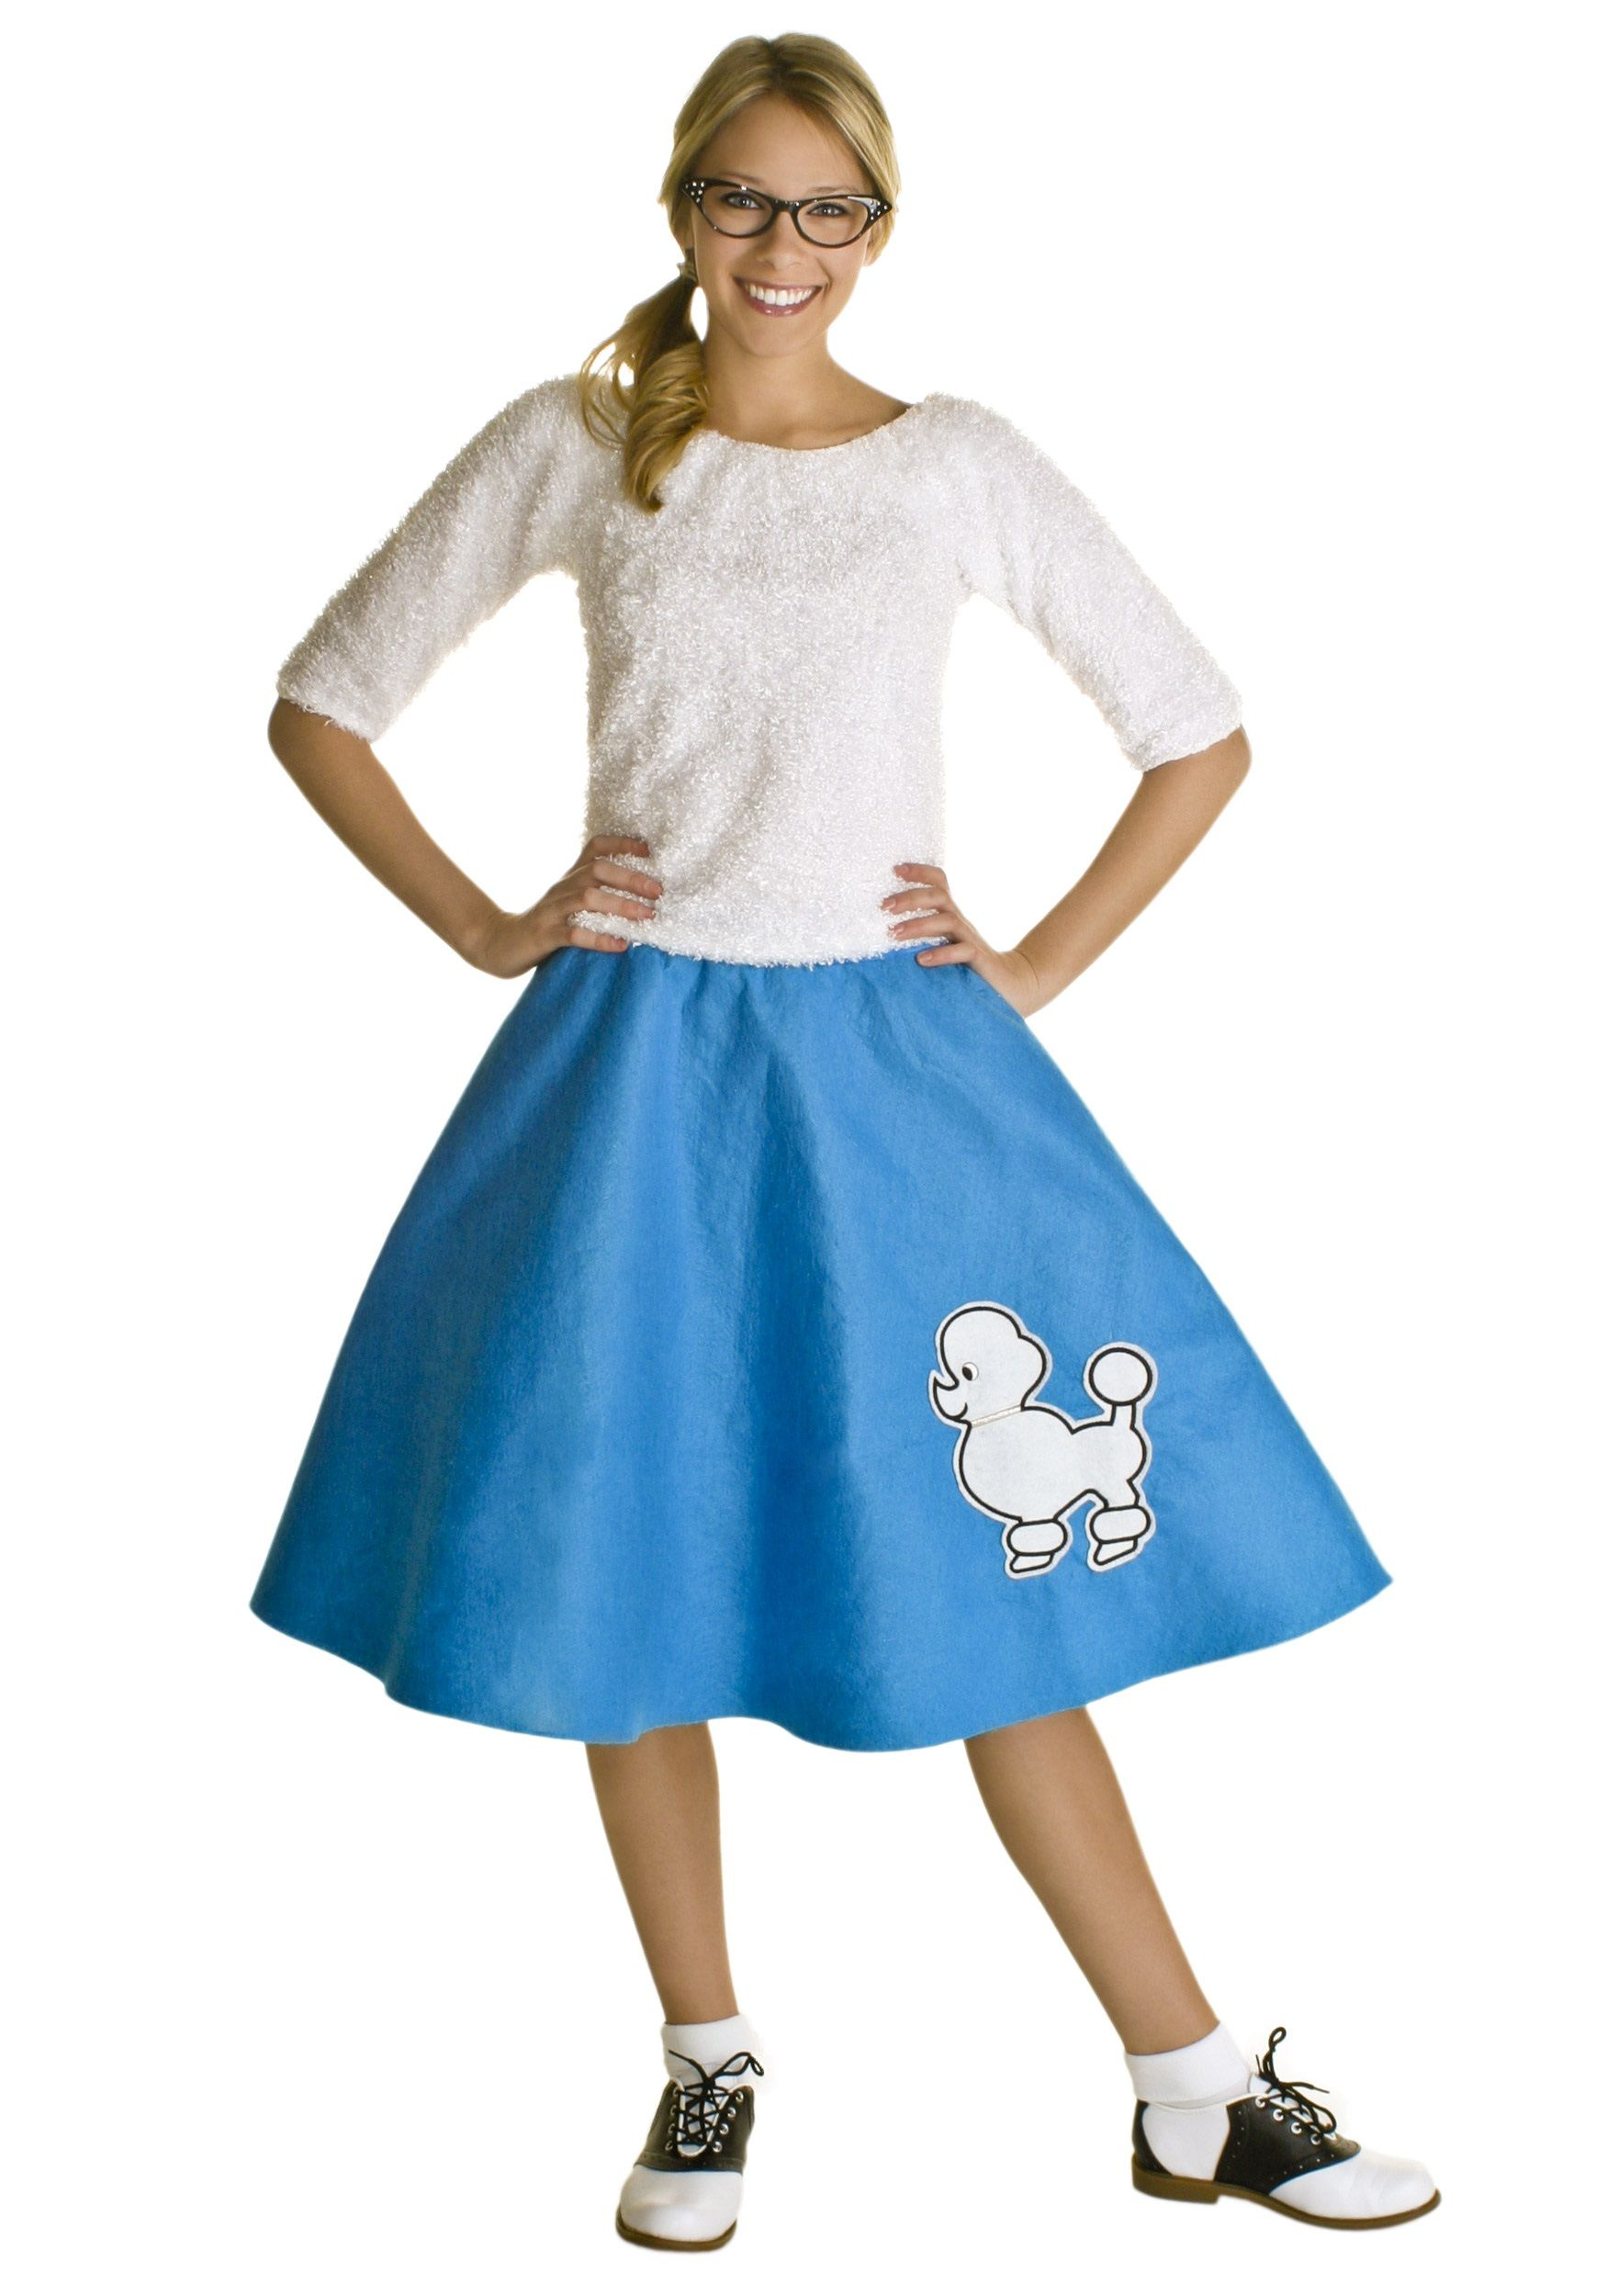 50s poodle hairstyles skirt photo